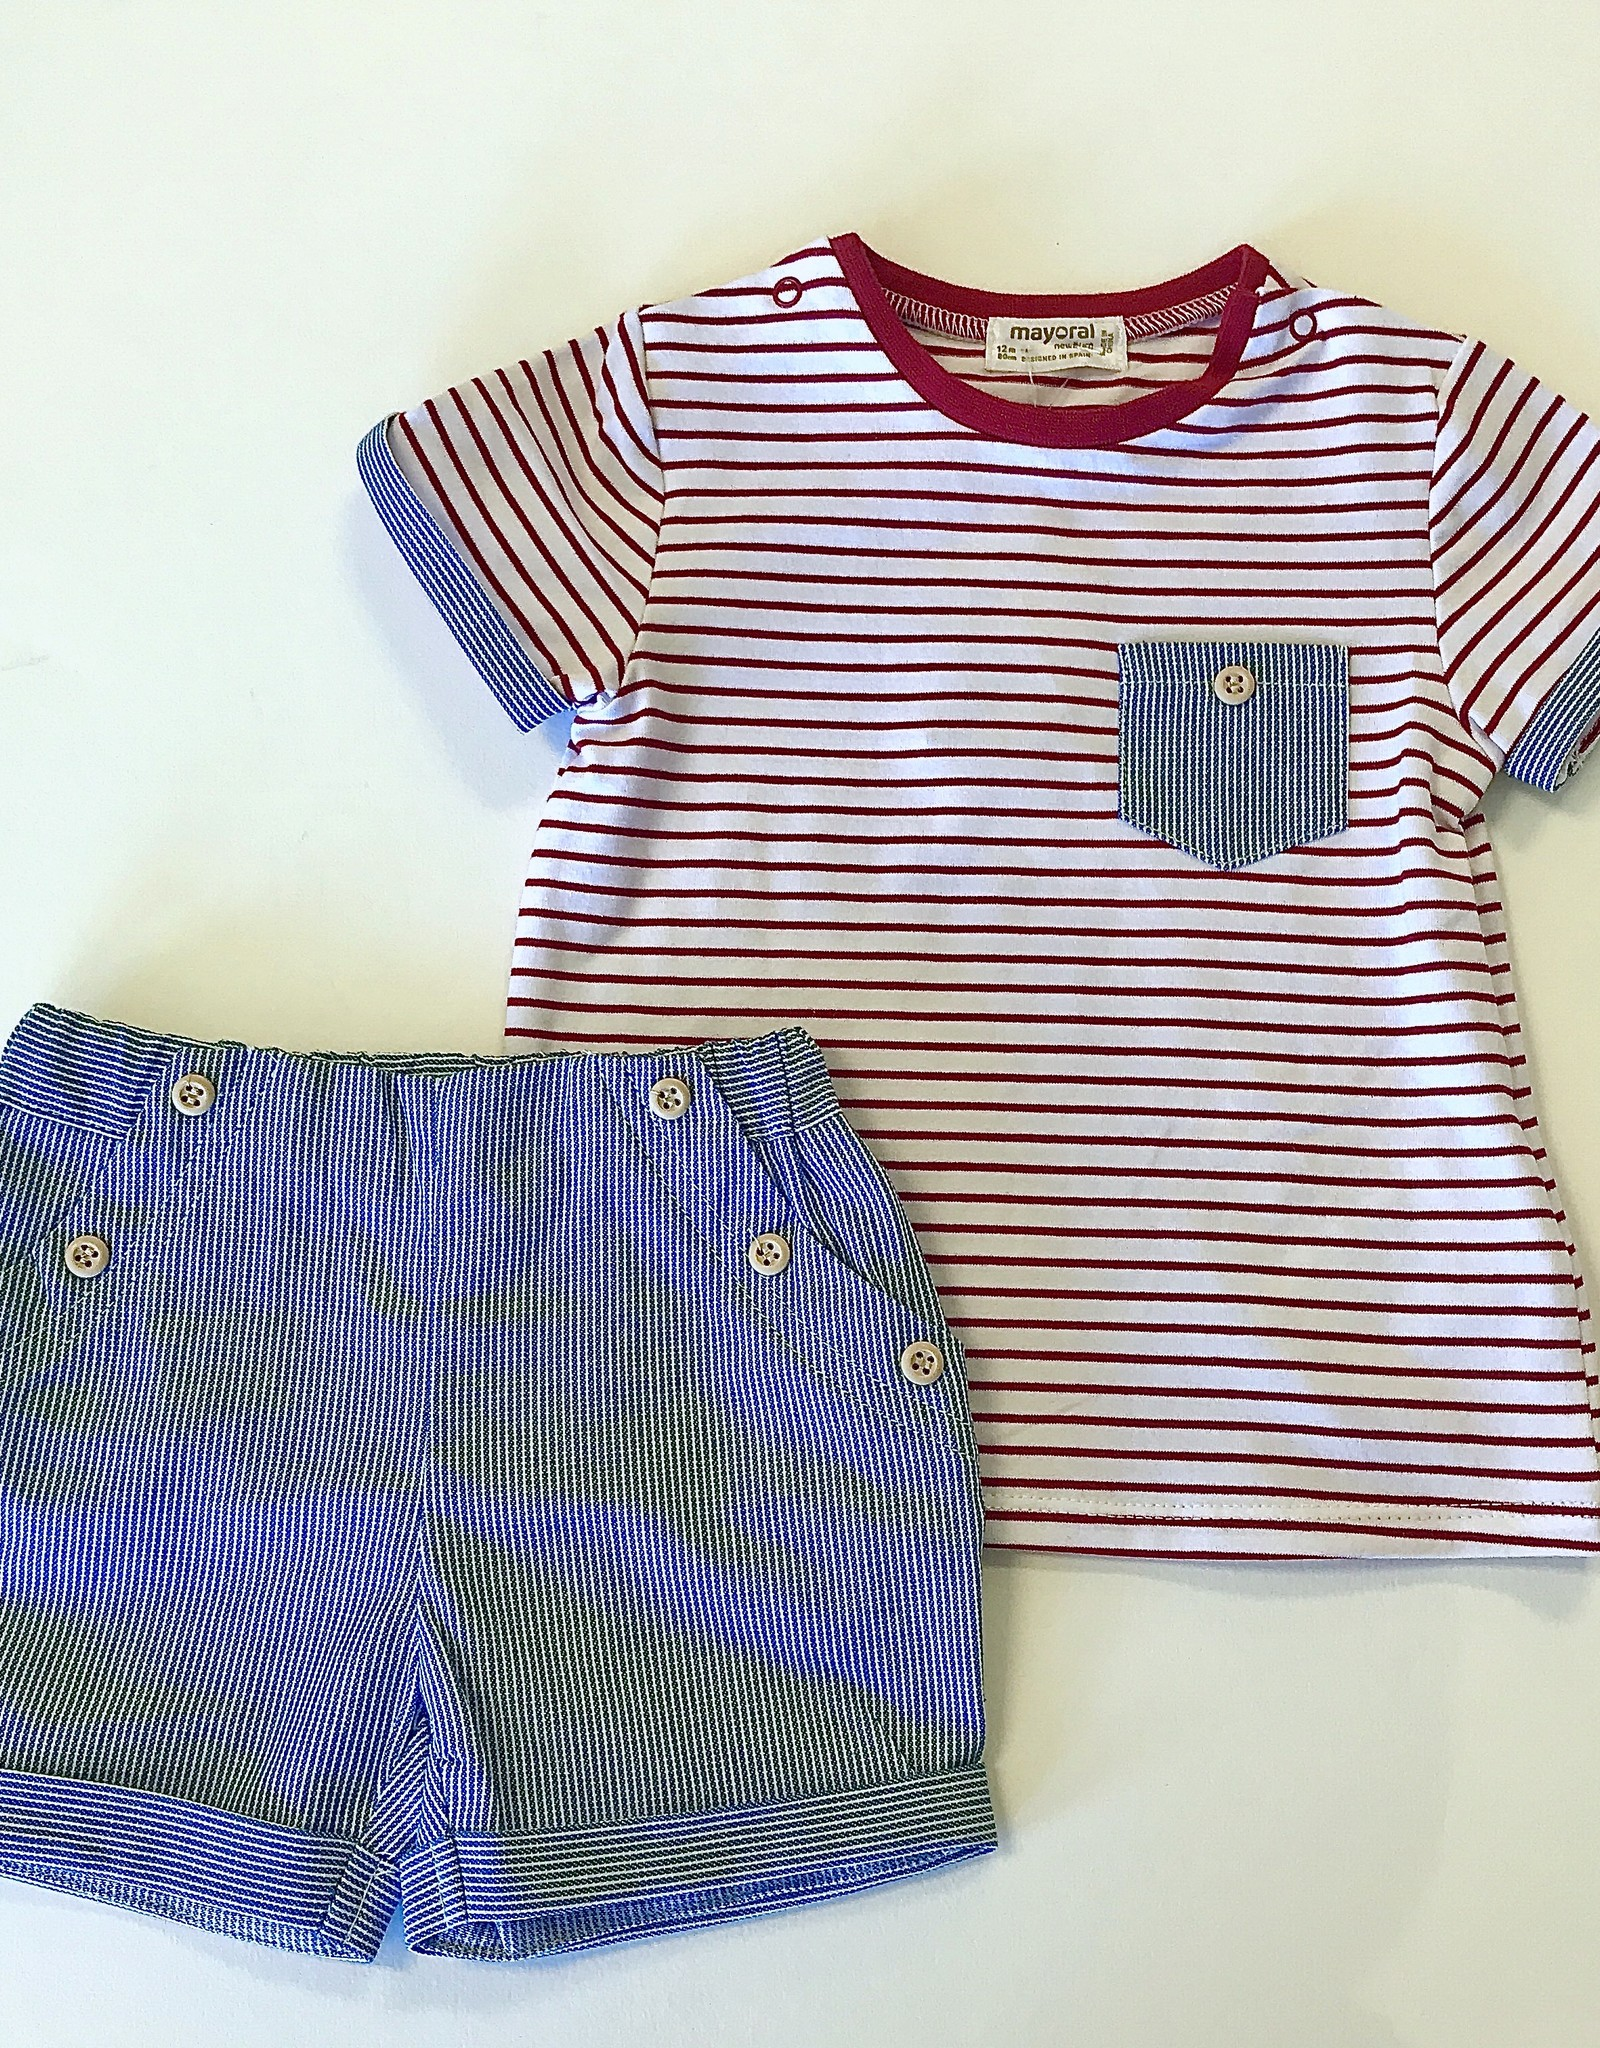 Mayoral Tee Red Stripe Blue Trim 4-6m to 18m